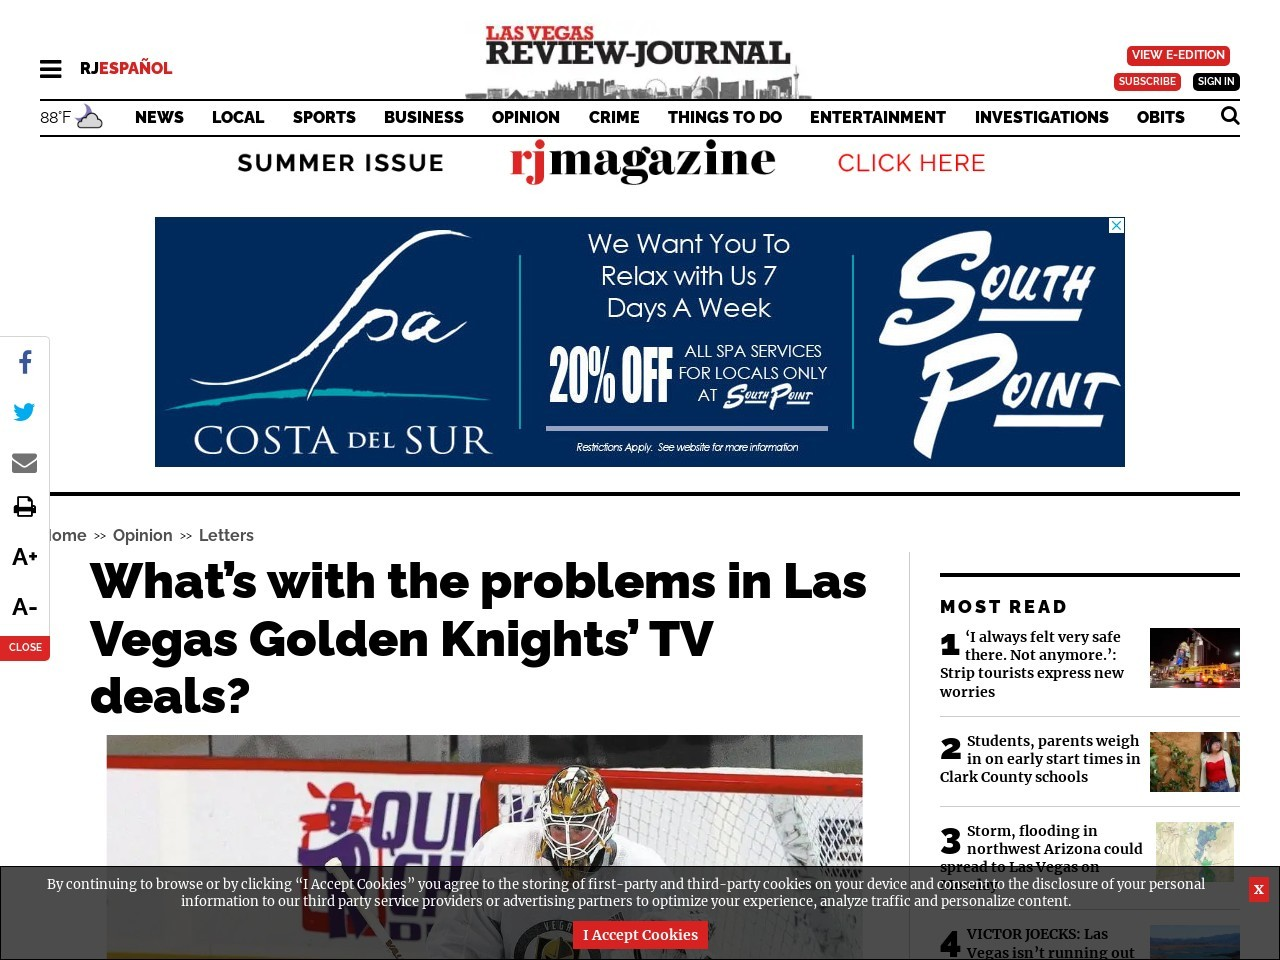 What's with the problems in Las Vegas Golden Knights' TV deals?